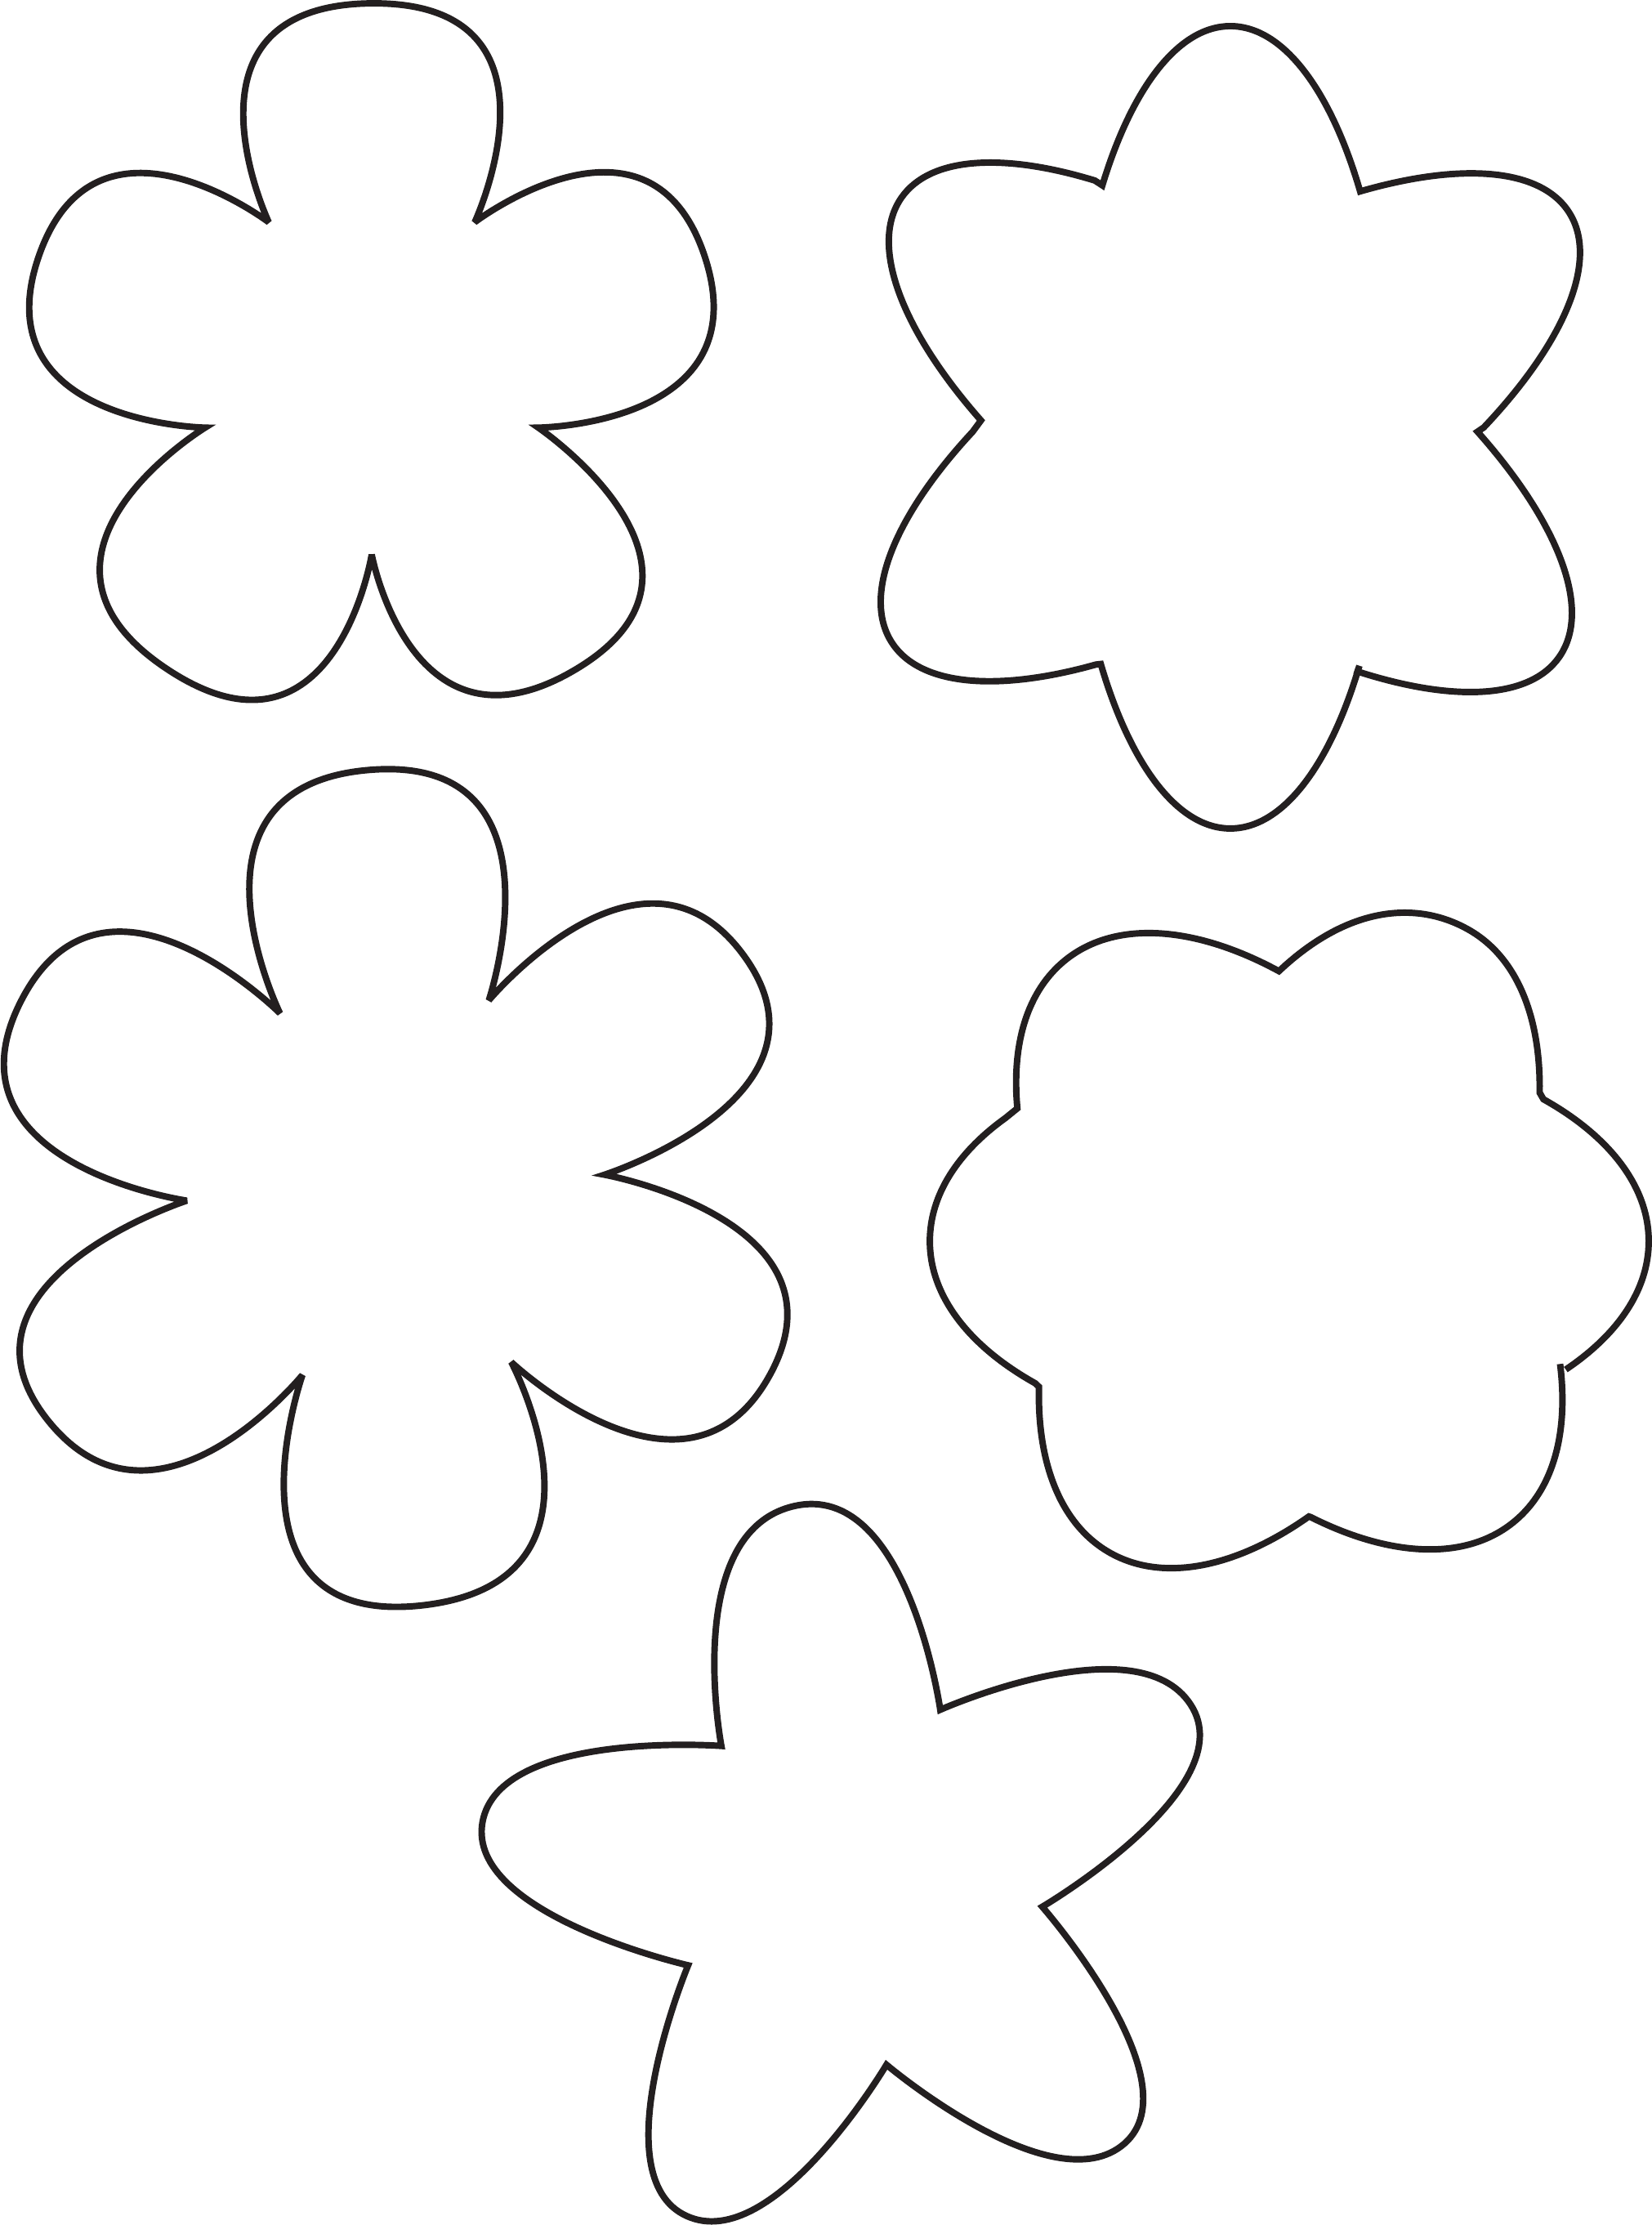 Cricut Paper Flower Templates Free